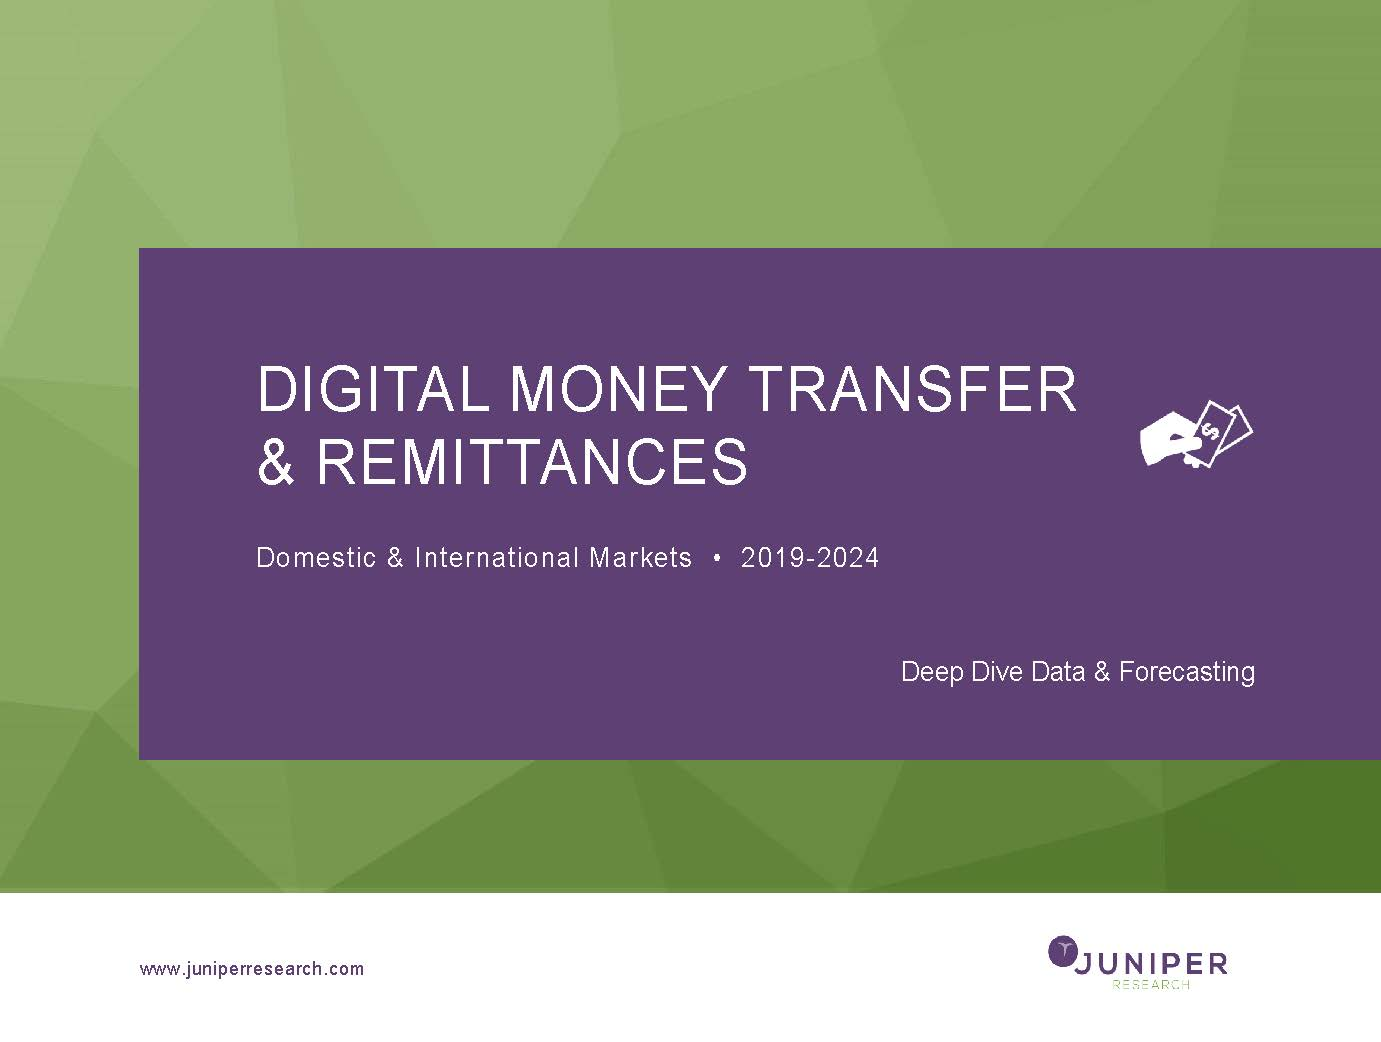 Digital Money Transfer - Deep Dive Data & Forecasting 2019-2024